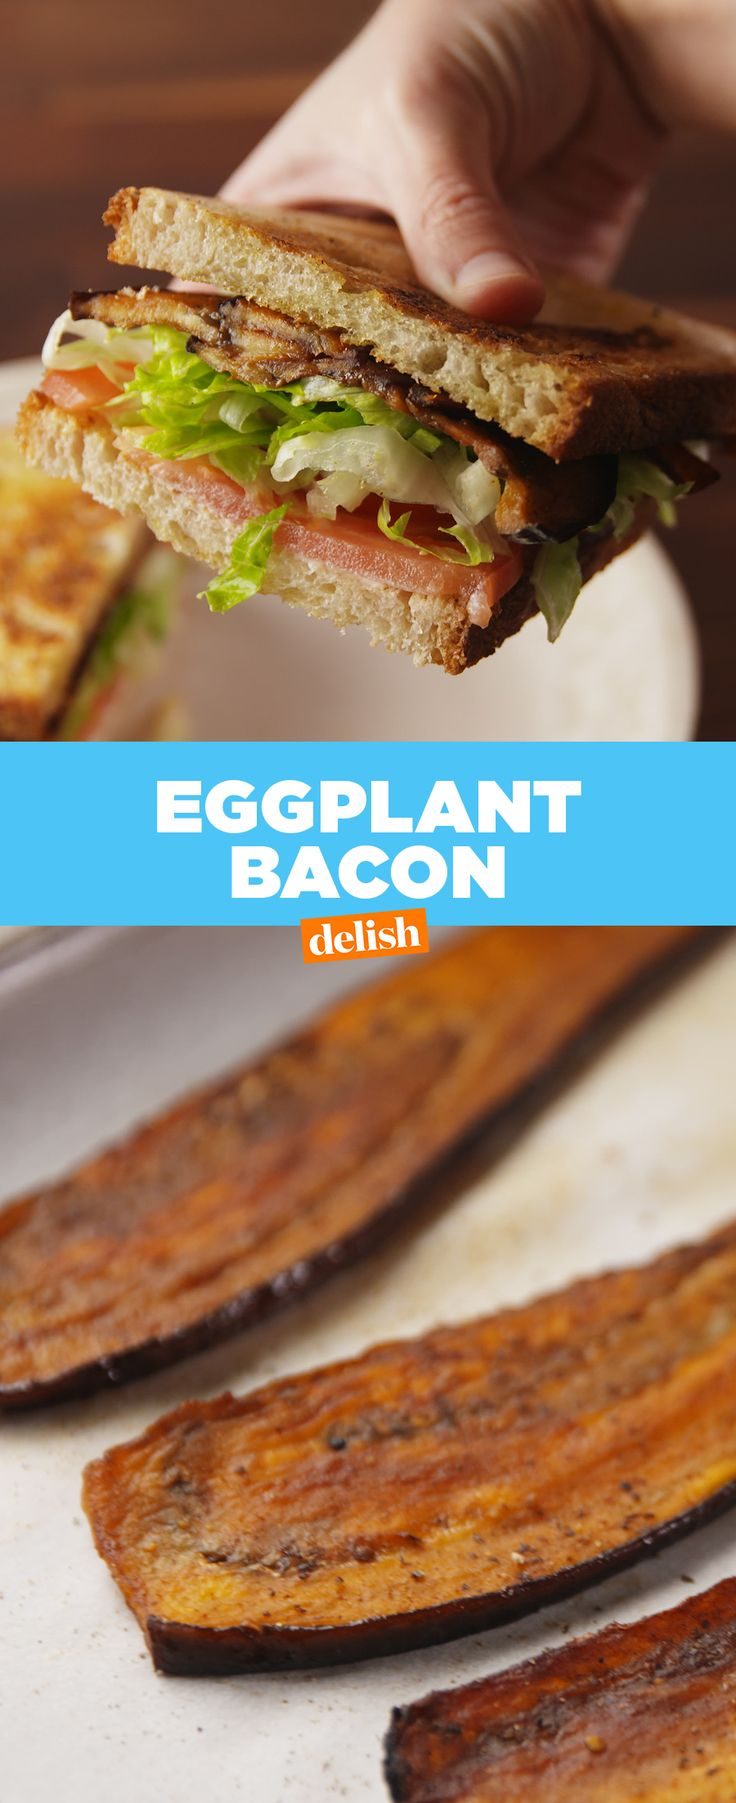 Did you know you can turn eggplant into bacon?? You do now. Get the recipe at Delish.com.